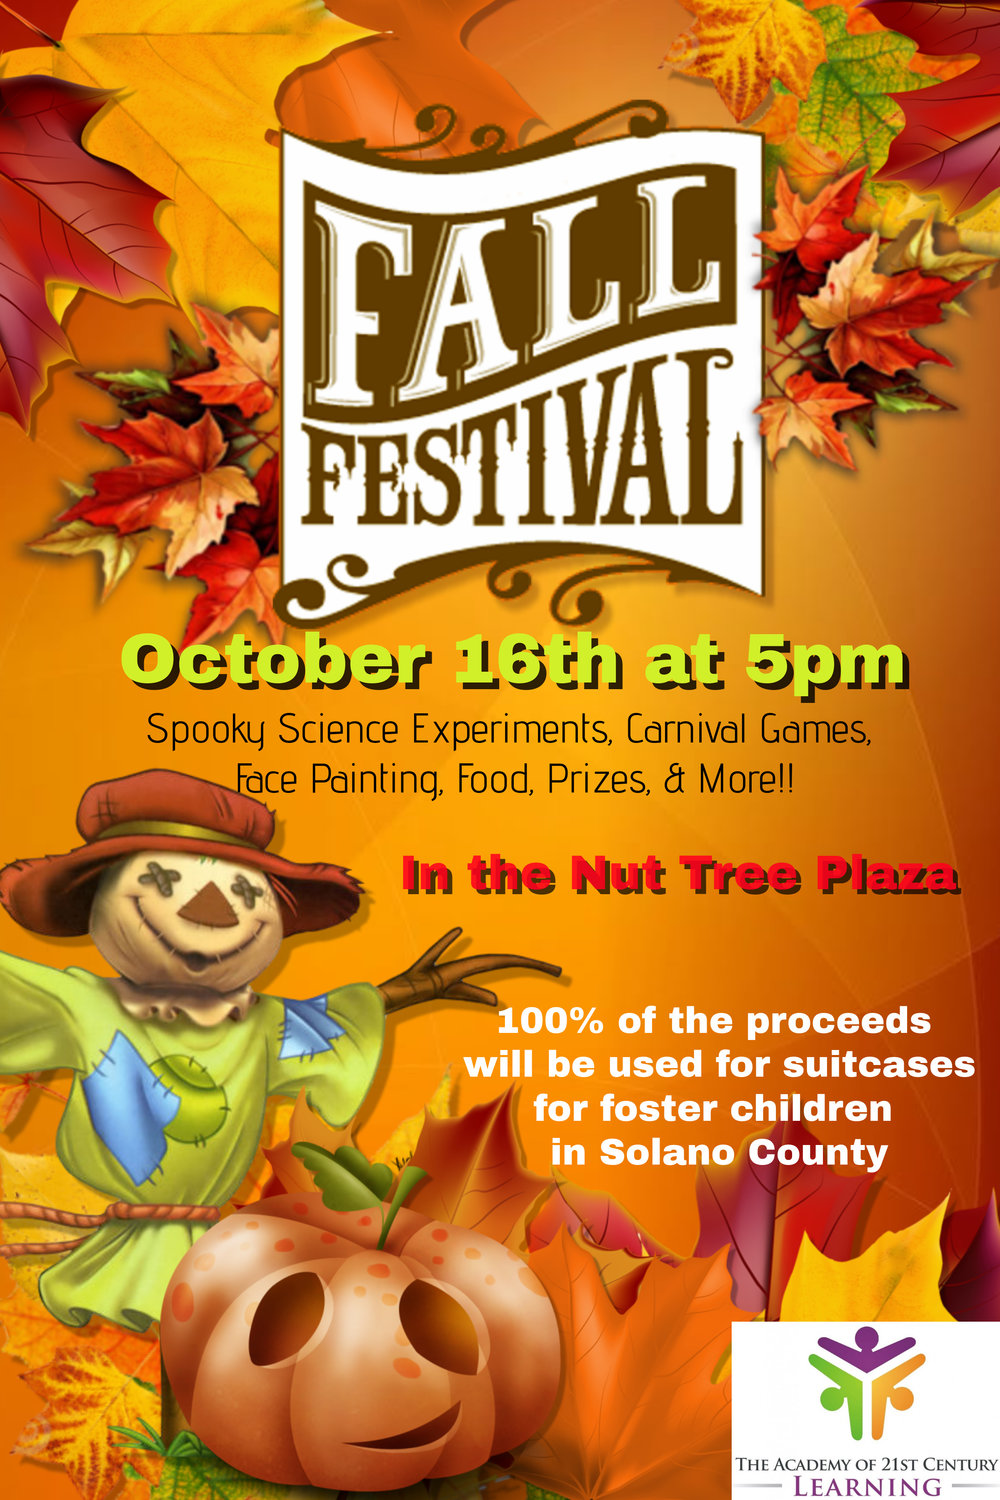 Copy of Fall Festival (2).jpg